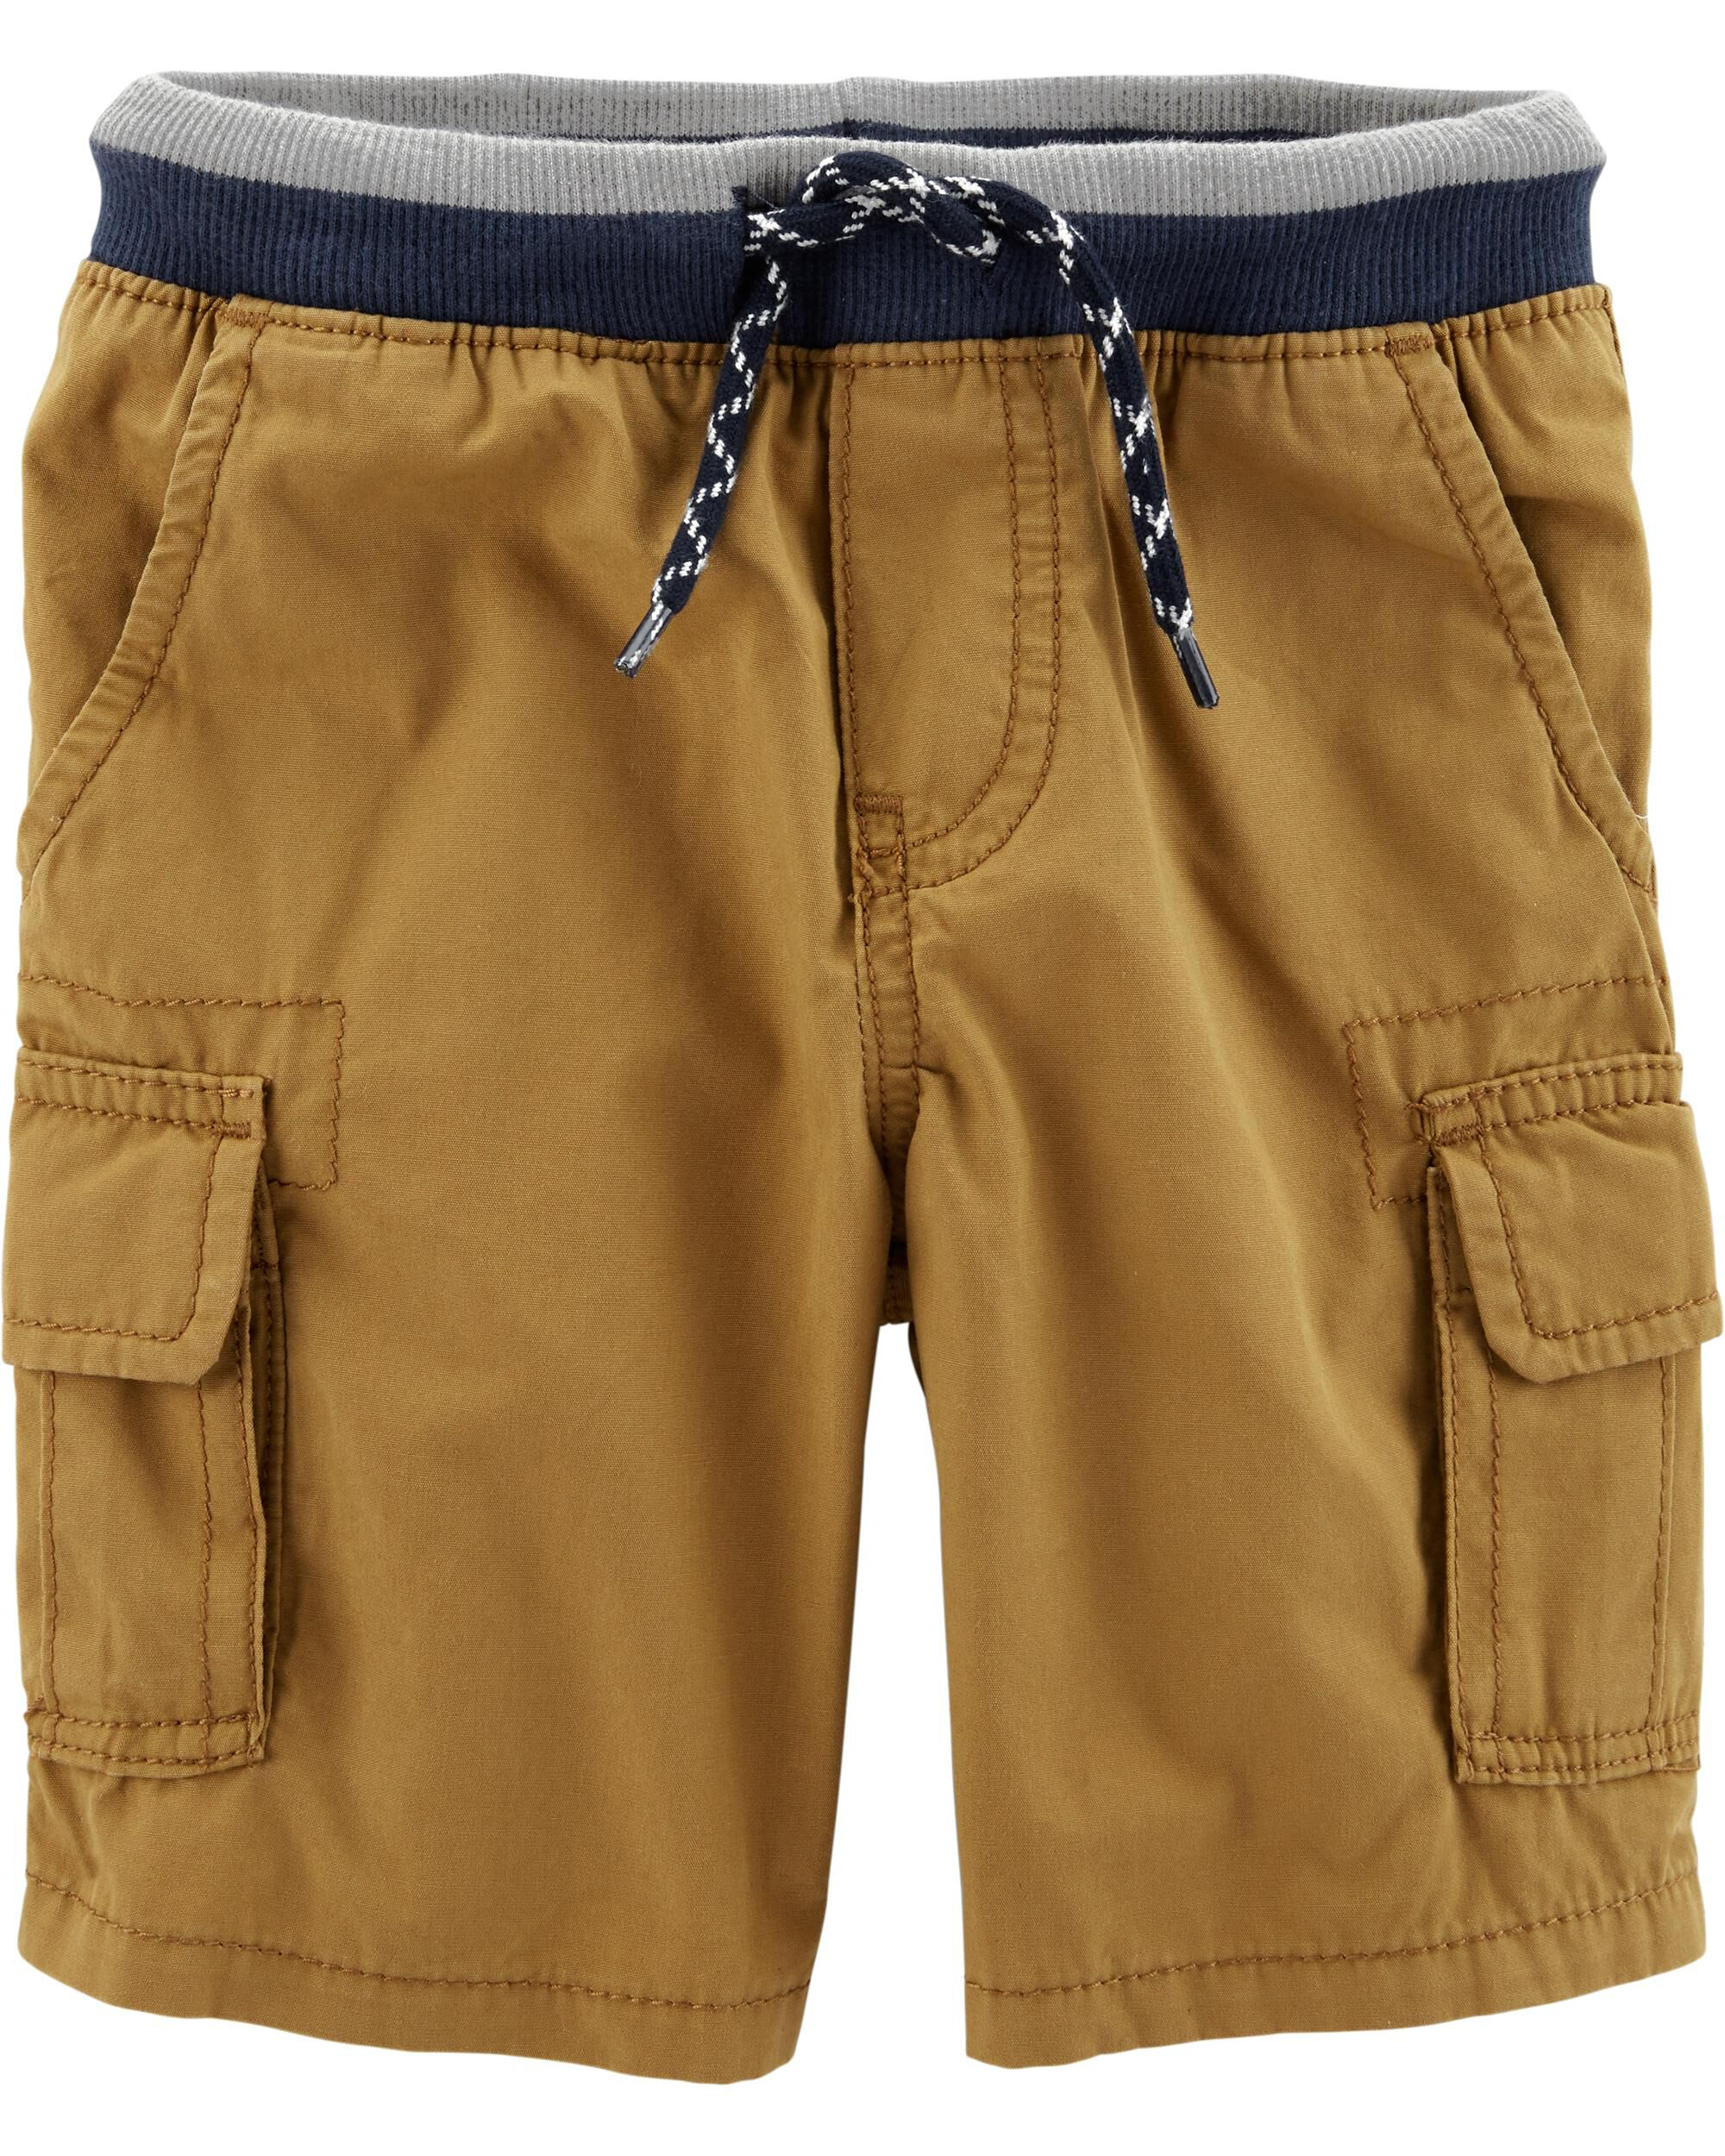 *Clearance*  Pull-On Cargo Shorts